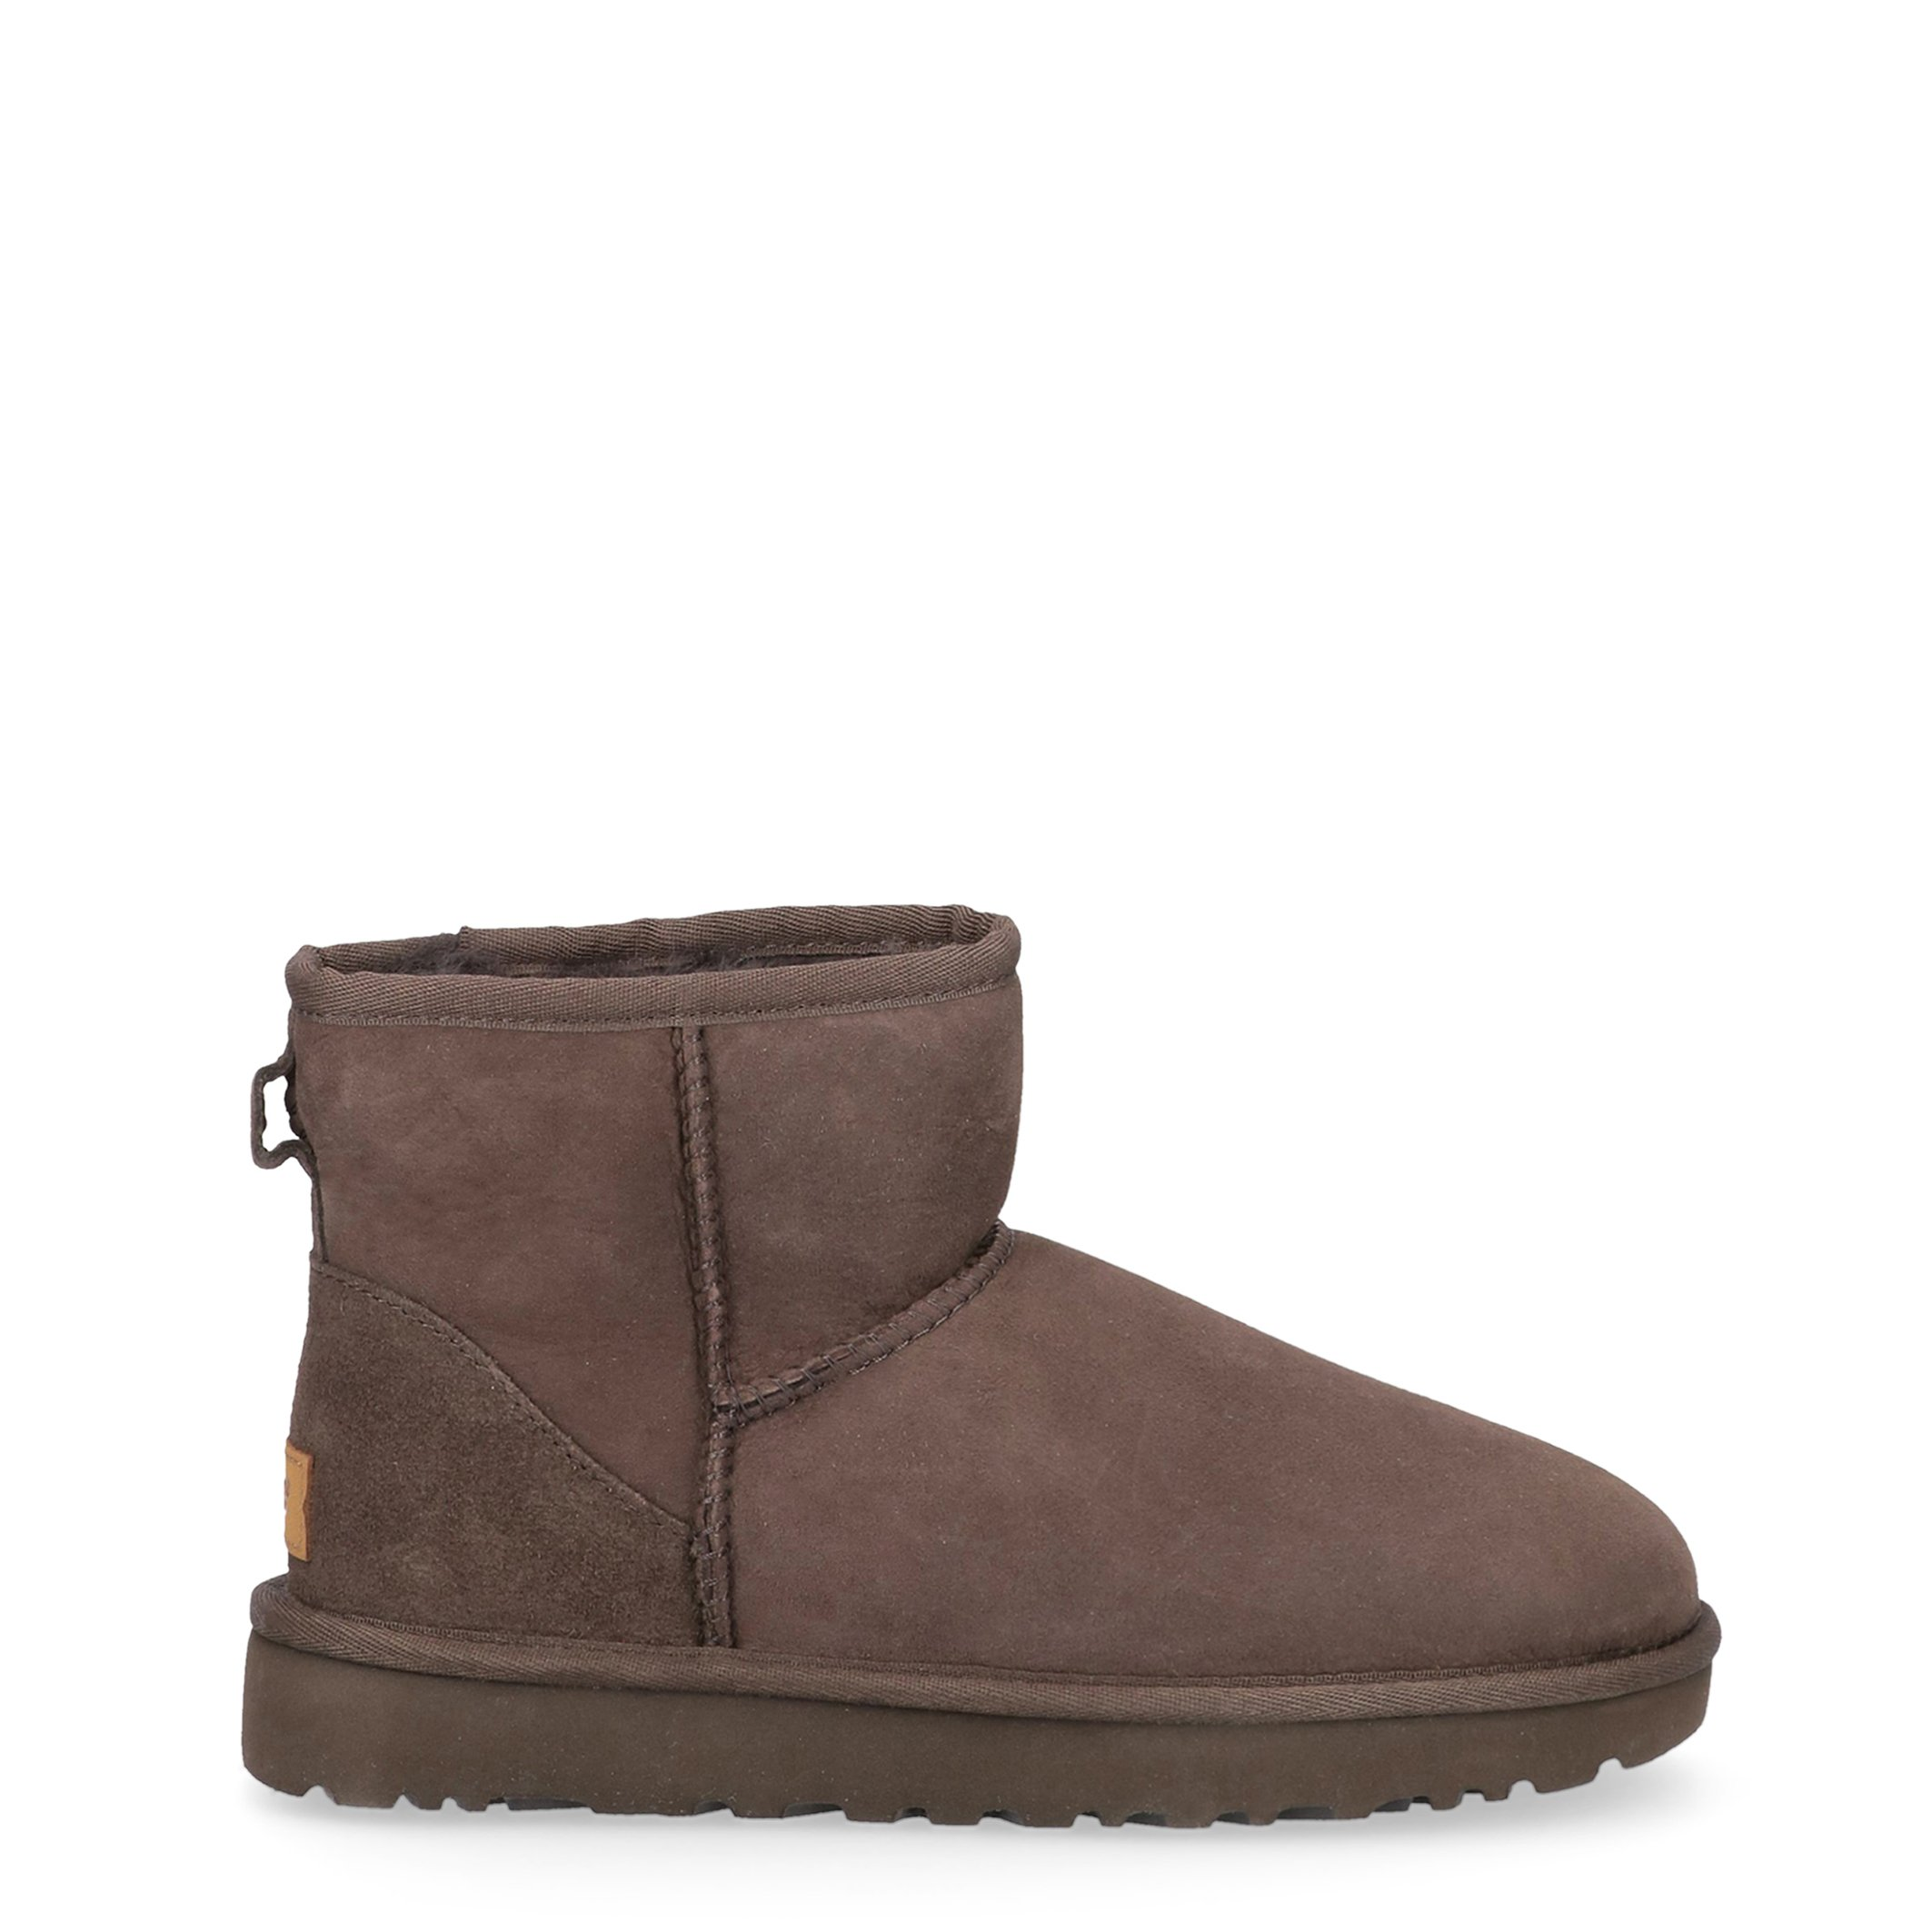 UGG Women's Ankle Boot Various Colours 1016222 - brown EU 37